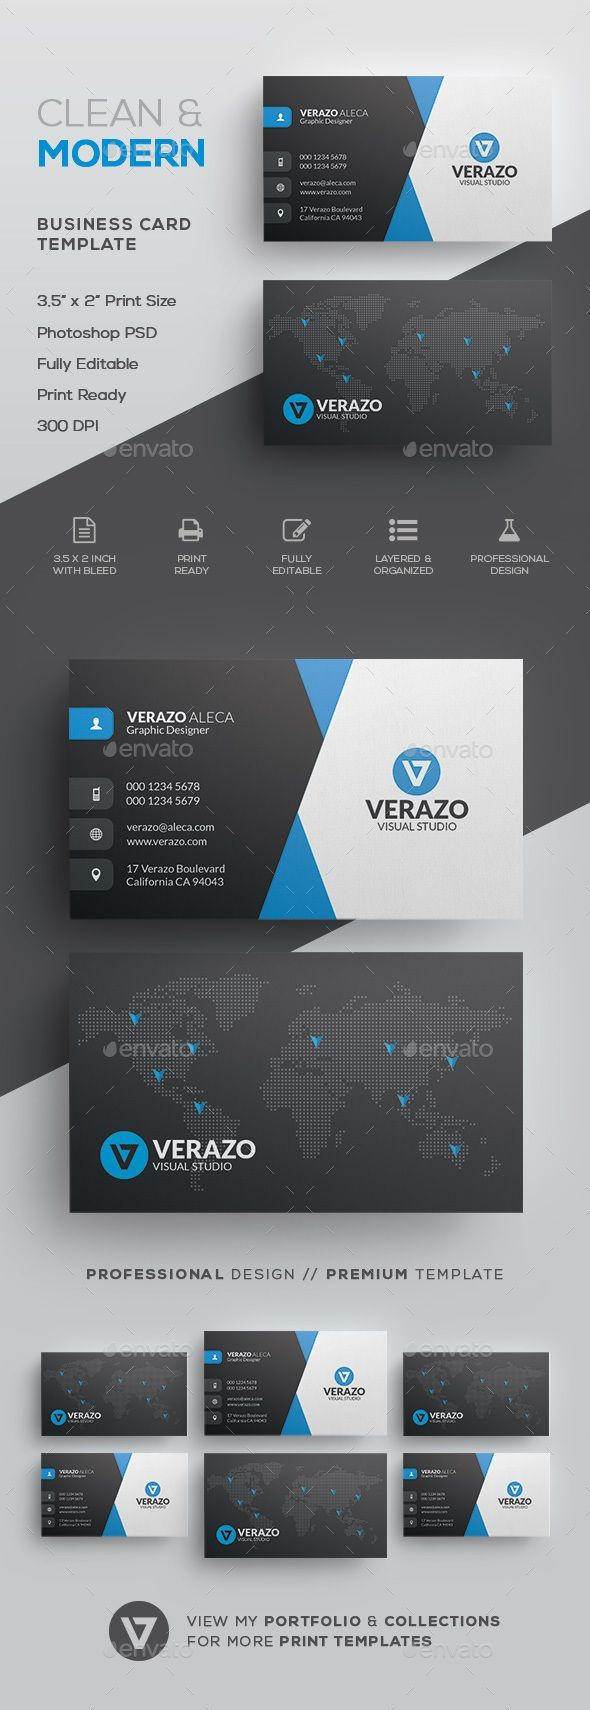 Templates Business Card Template Word Online Also Business Card